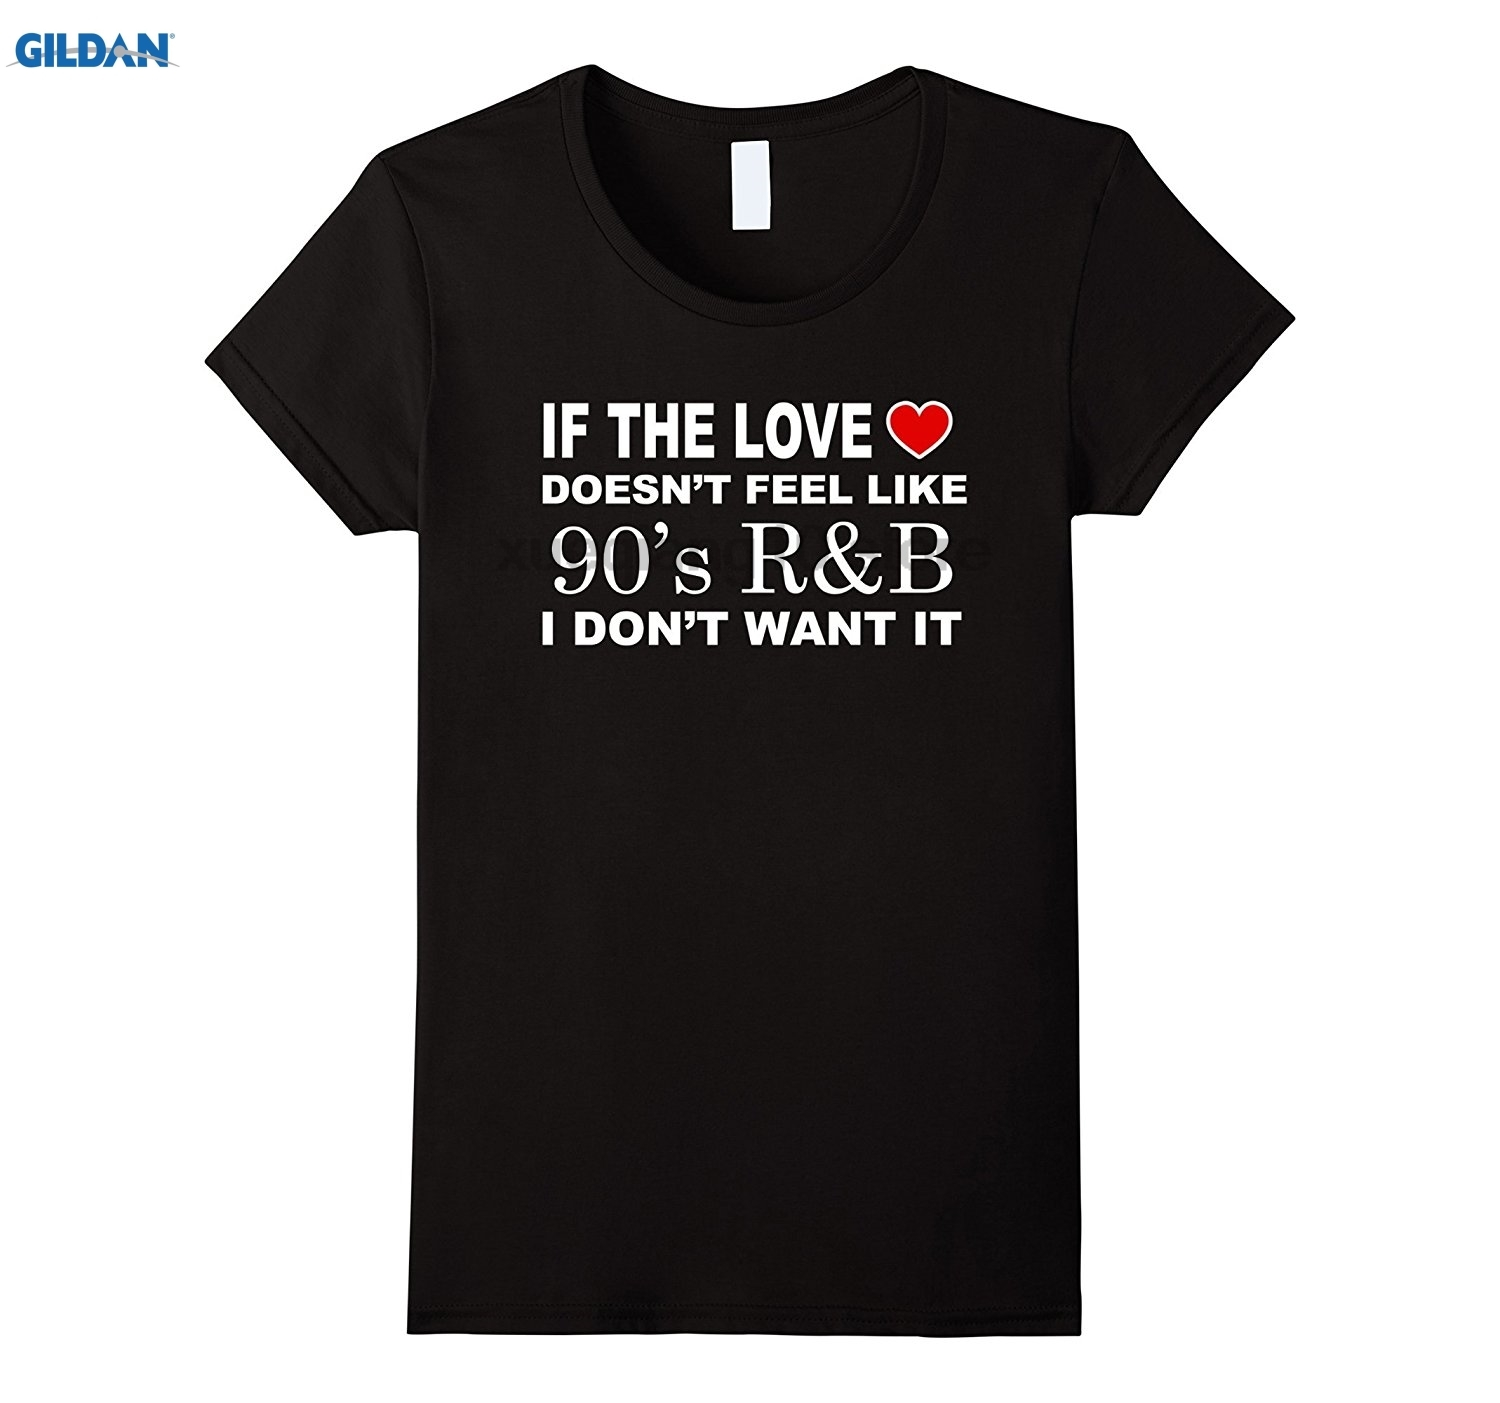 GILDAN GILDAN If The Love Doesnt Feel Like 90s R&B I Dont Want It Shirt